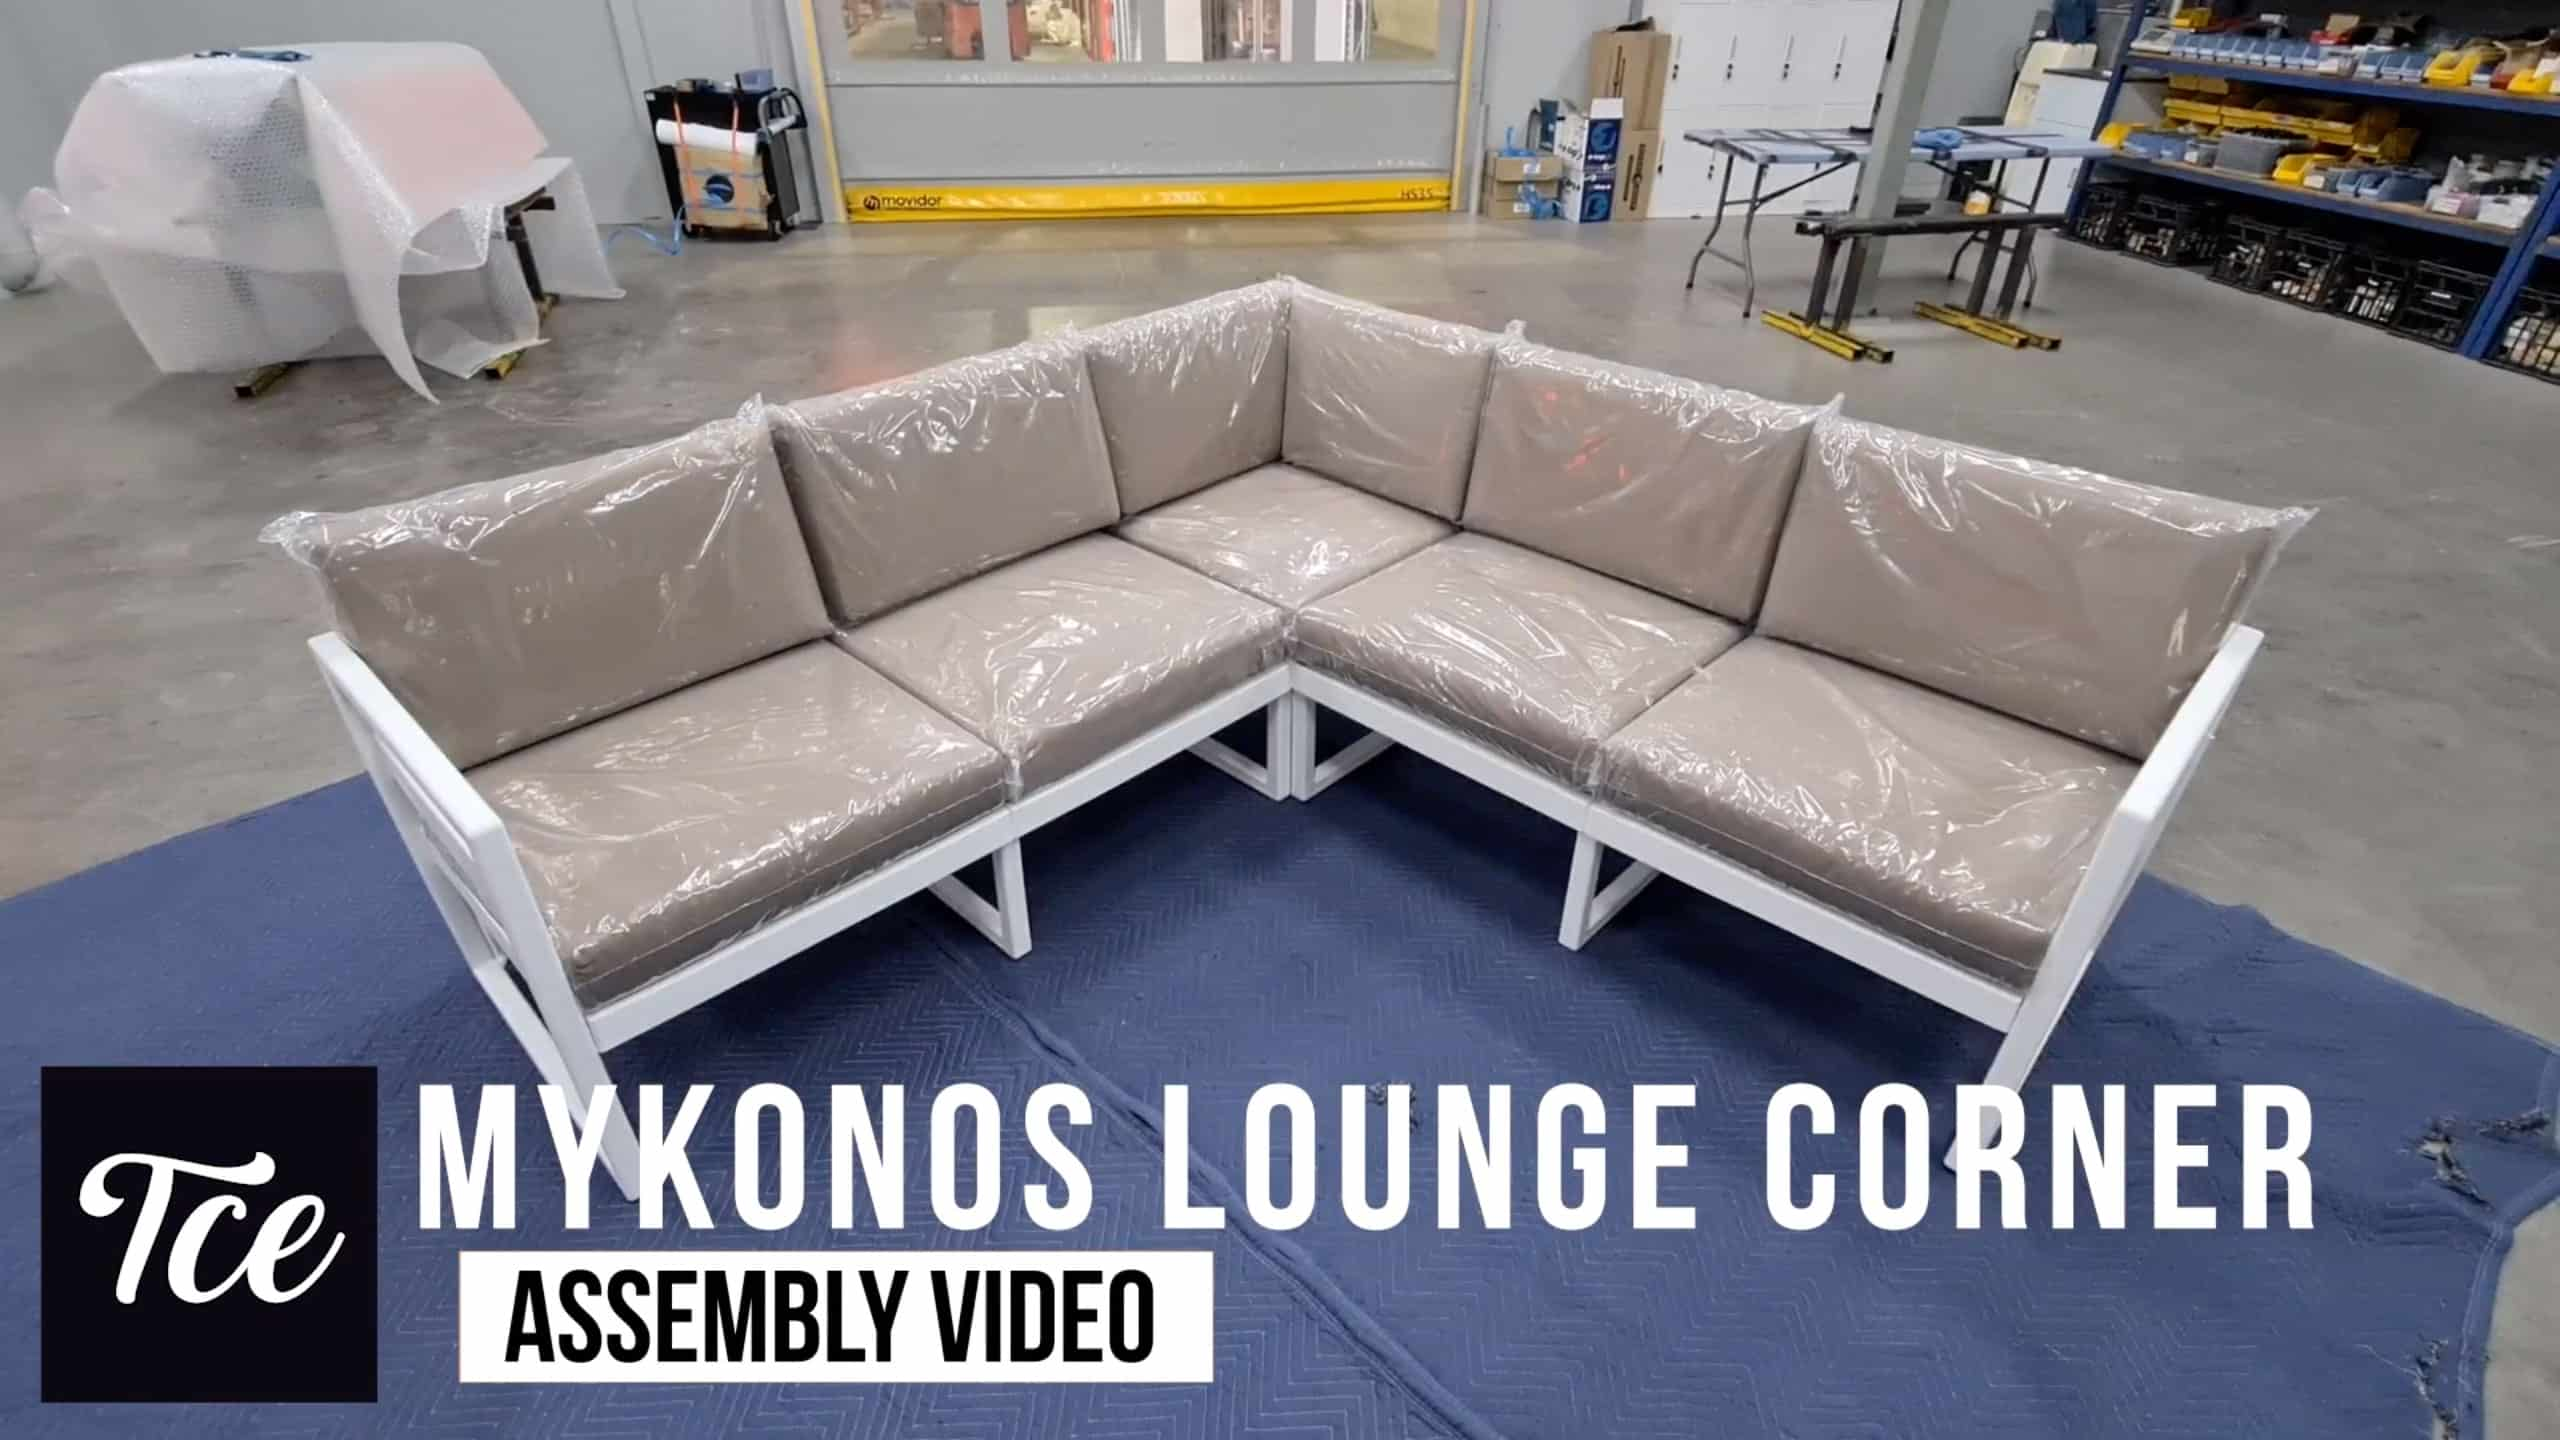 Assembly for the Mykonos Lounge Corner